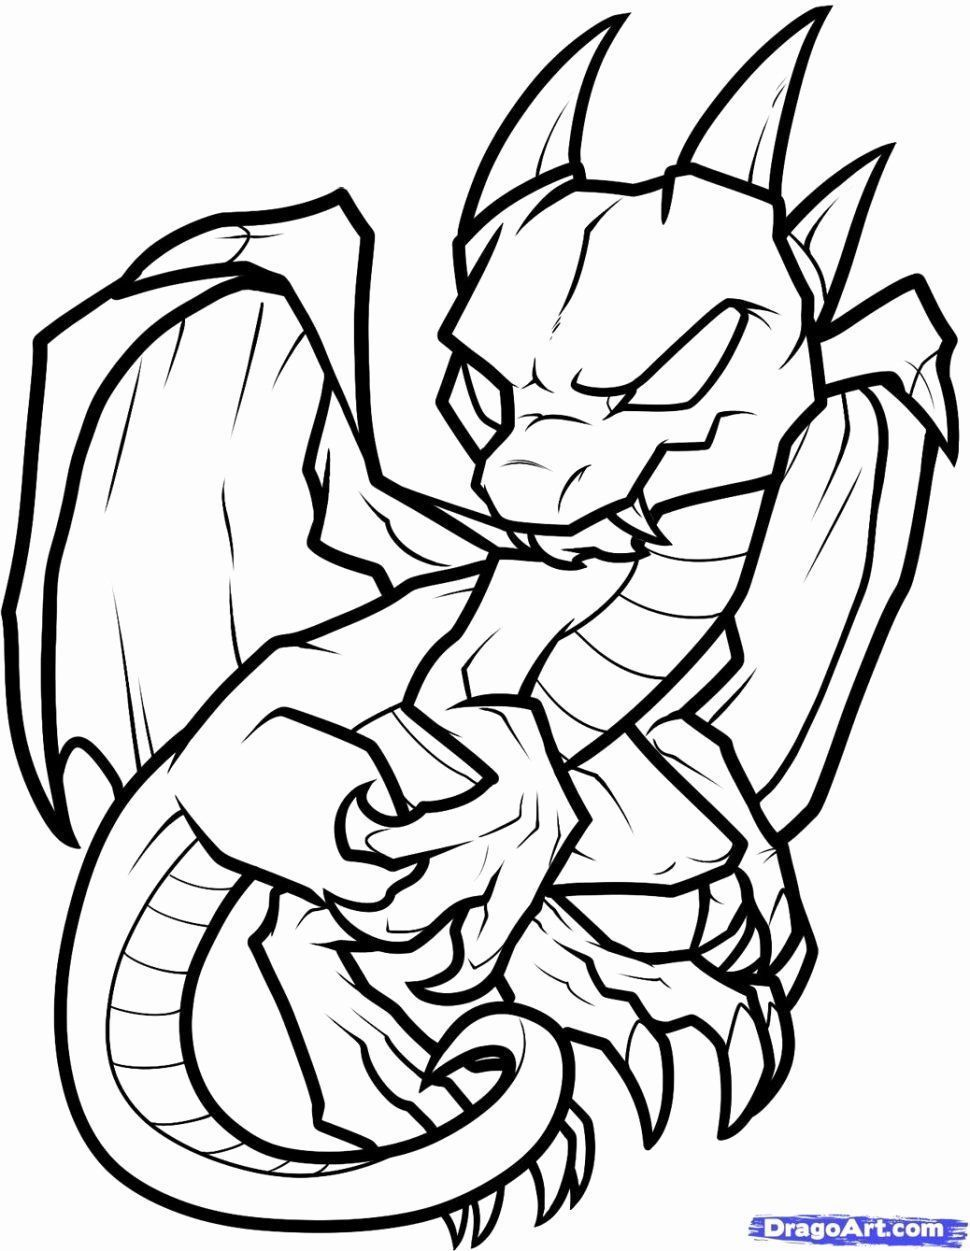 Chinese Dragon Coloring Pages Beautiful Chinese Dragon Faces Chinese Chinese Dragon Coloring Pages Drachen Skizze Umrisszeichnungen Drachenzeichnungen